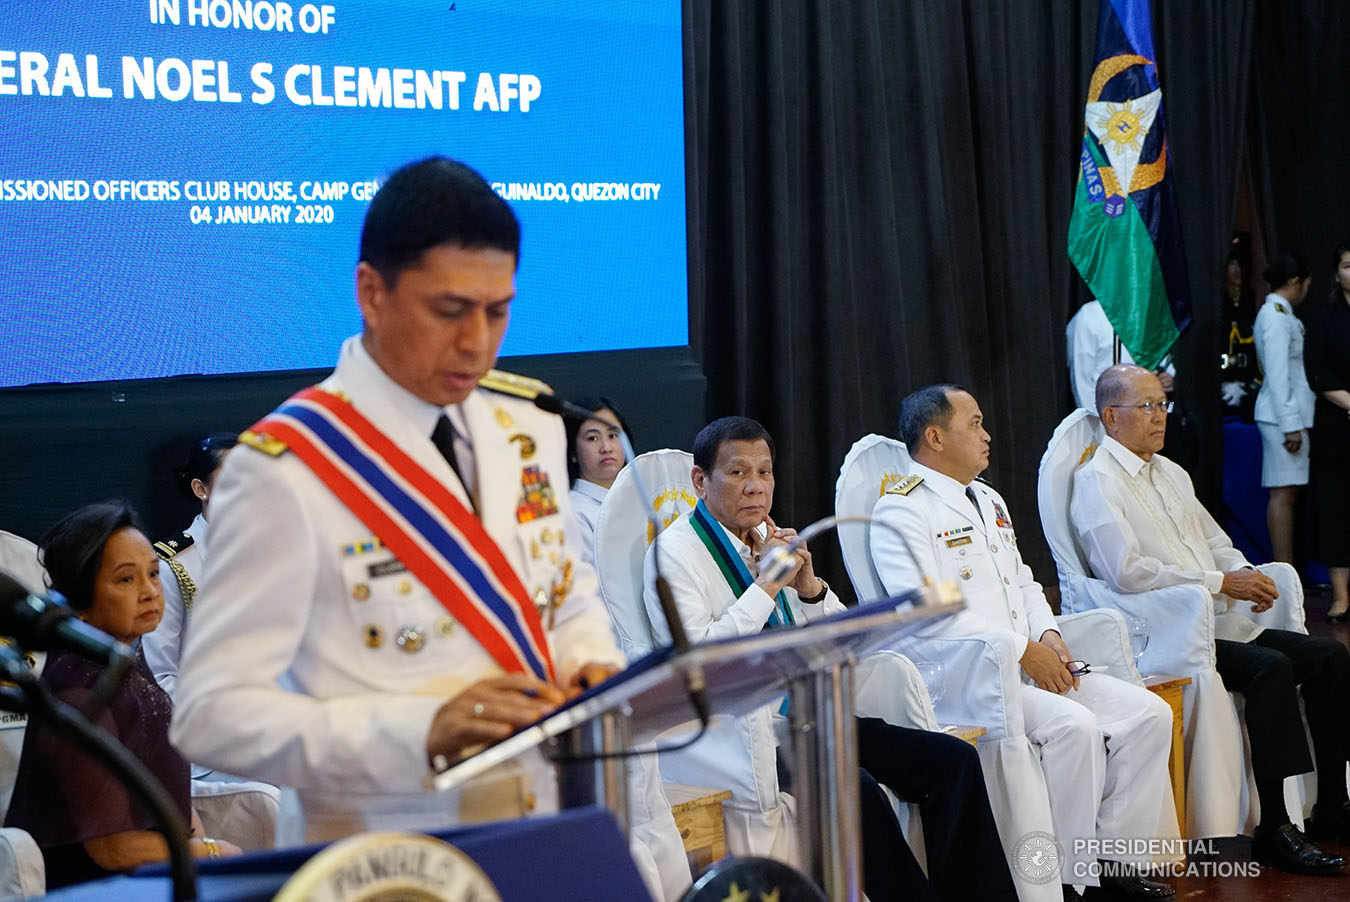 President Rodrigo Roa Duterte listens to the message of outgoing Armed Forces of the Philippines (AFP) Chief of Staff General Noel Clement during the AFP Change of Command ceremony at Camp General Emilio Aguinaldo in Quezon City on January 4, 2020. KING RODRIGUEZ/PRESIDENTIAL PHOTO